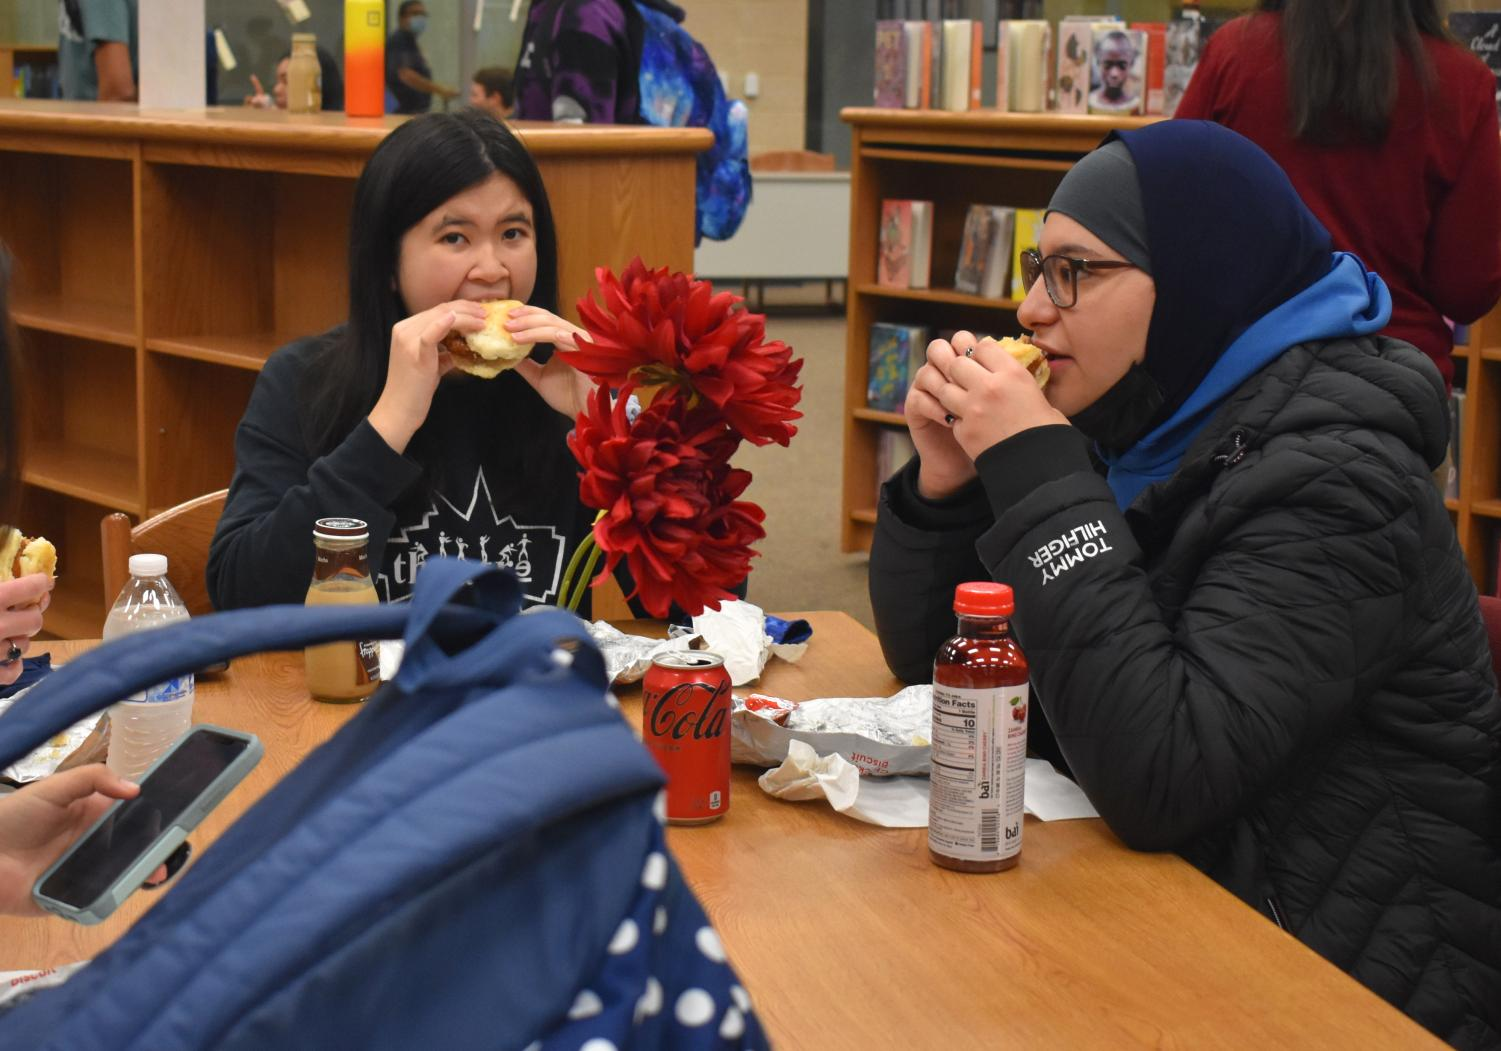 """Seniors Esther McPalmer and Maryam Nabih eat Chick-fil-A breakfast sandwiches in the library during senior breakfast. """"[Senior year] is going OK, it's not bad, and I'm enjoying early release and [taking] less classes,"""" McPalmer said. McPalmer looks forward to prom and future senior breakfasts during her last year of high school."""